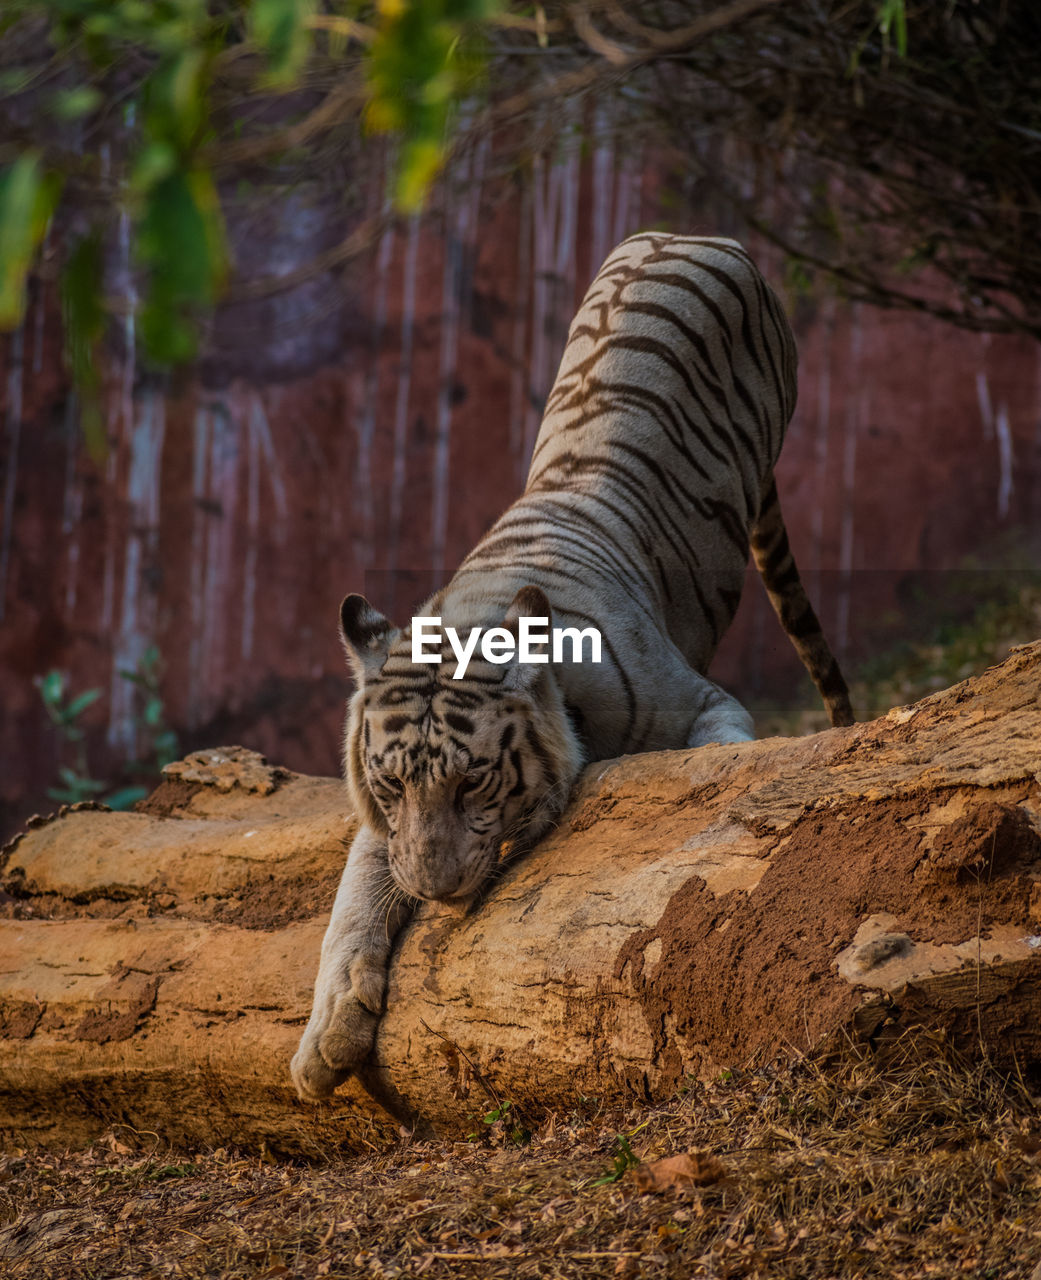 mammal, animal, animal themes, feline, animal wildlife, animals in the wild, big cat, tiger, vertebrate, one animal, cat, tree, nature, carnivora, no people, relaxation, day, land, animals in captivity, white tiger, zoo, outdoors, whisker